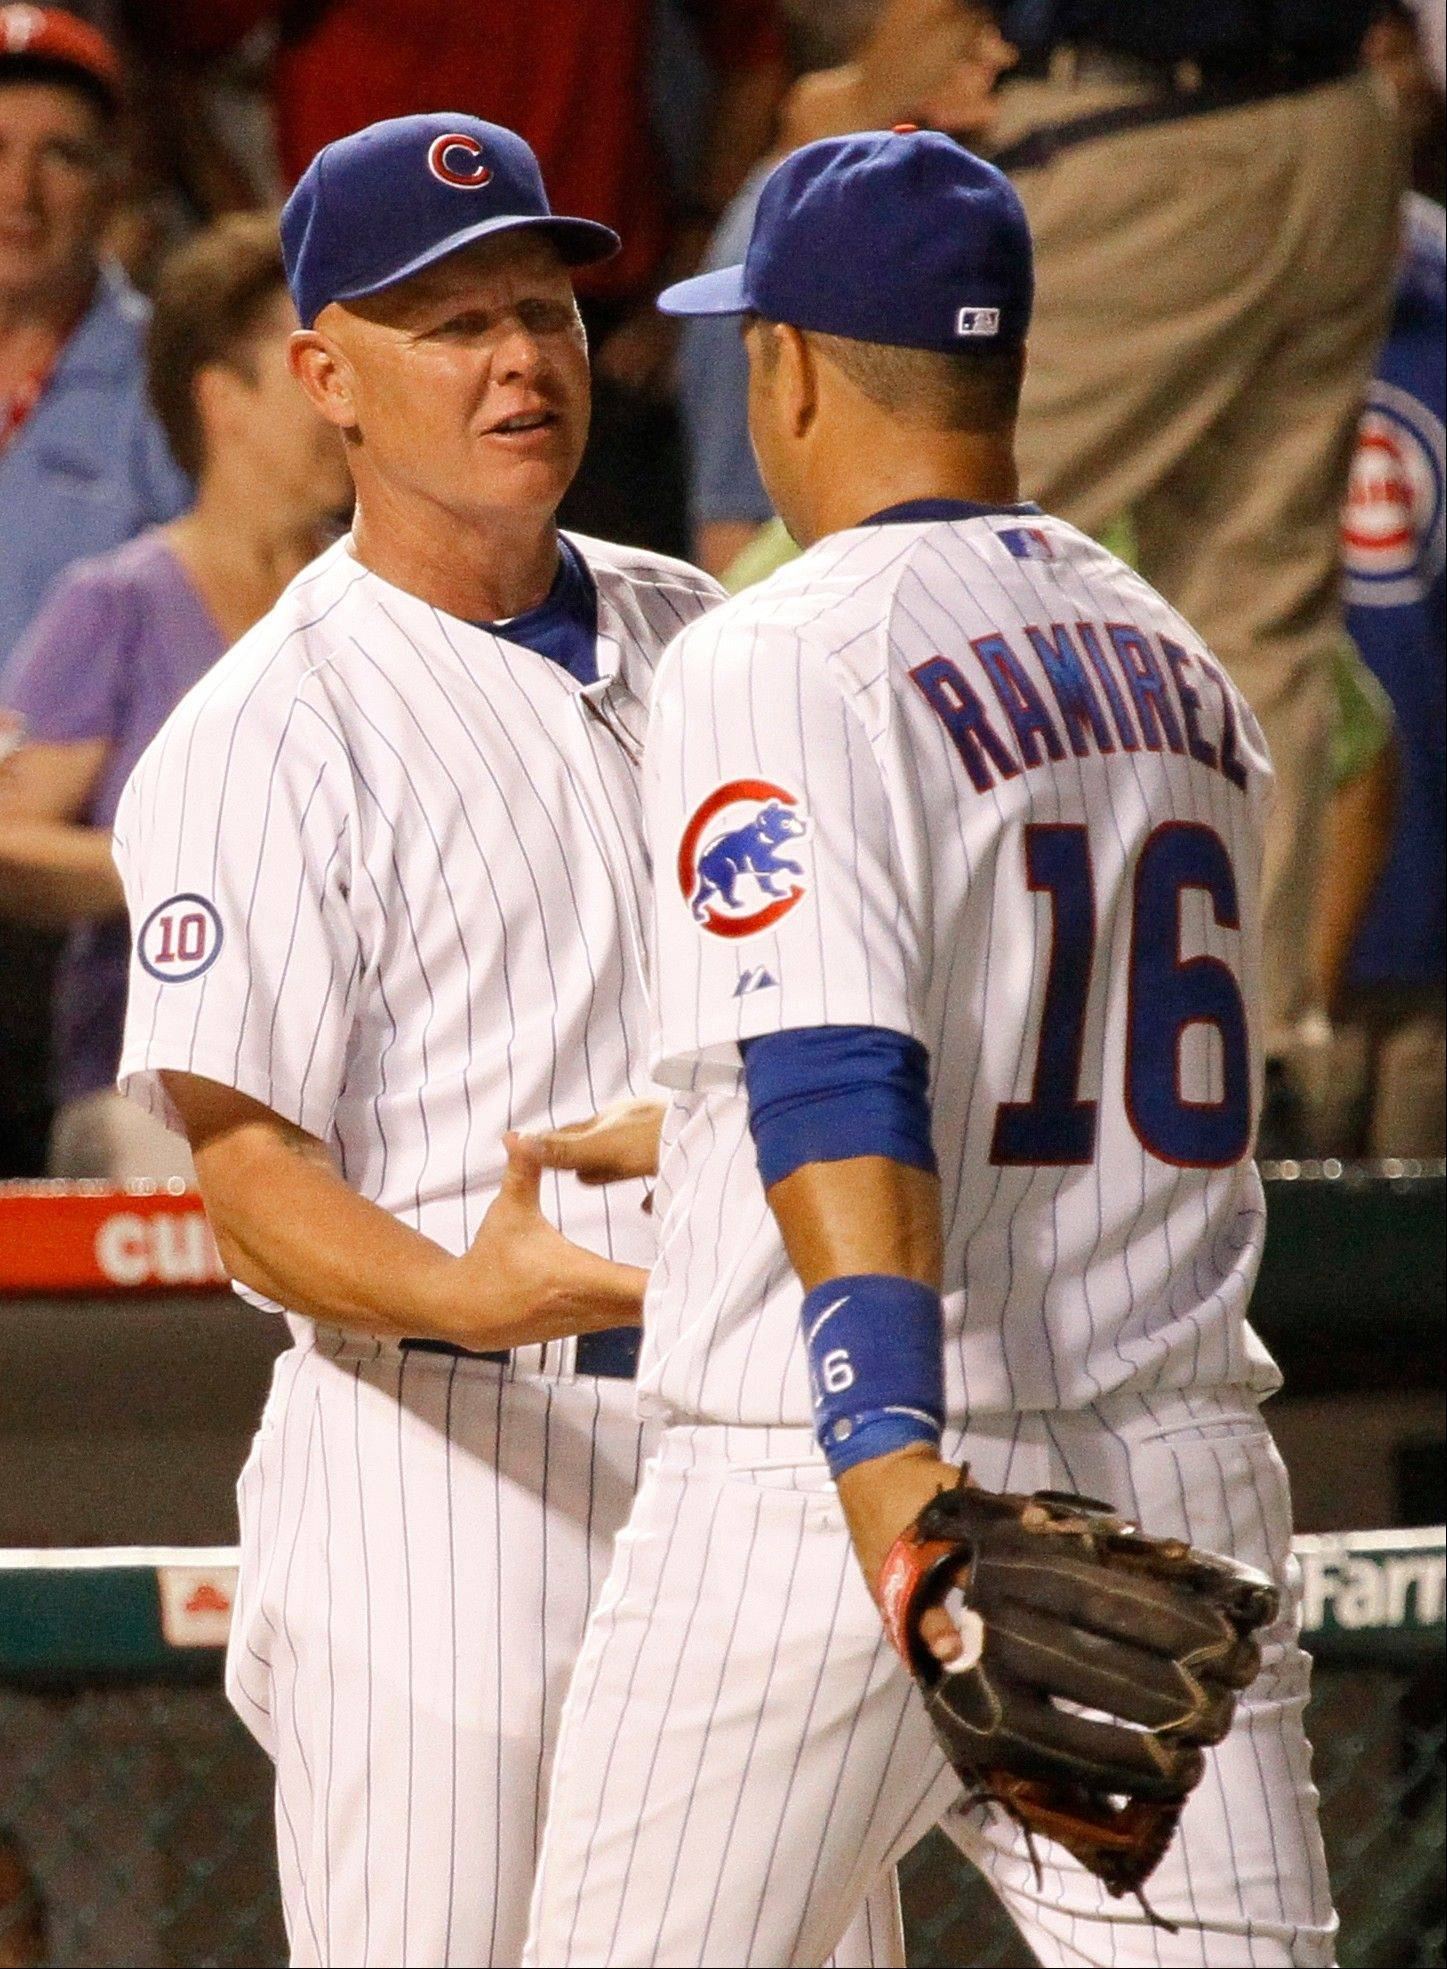 Chicago Cubs manager Mike Quade, left, celebrates with third baseman Aramis Ramirez their 6-1 win over the Philadelphia Phillies after a baseball game Monday, July 18, 2011 in Chicago.